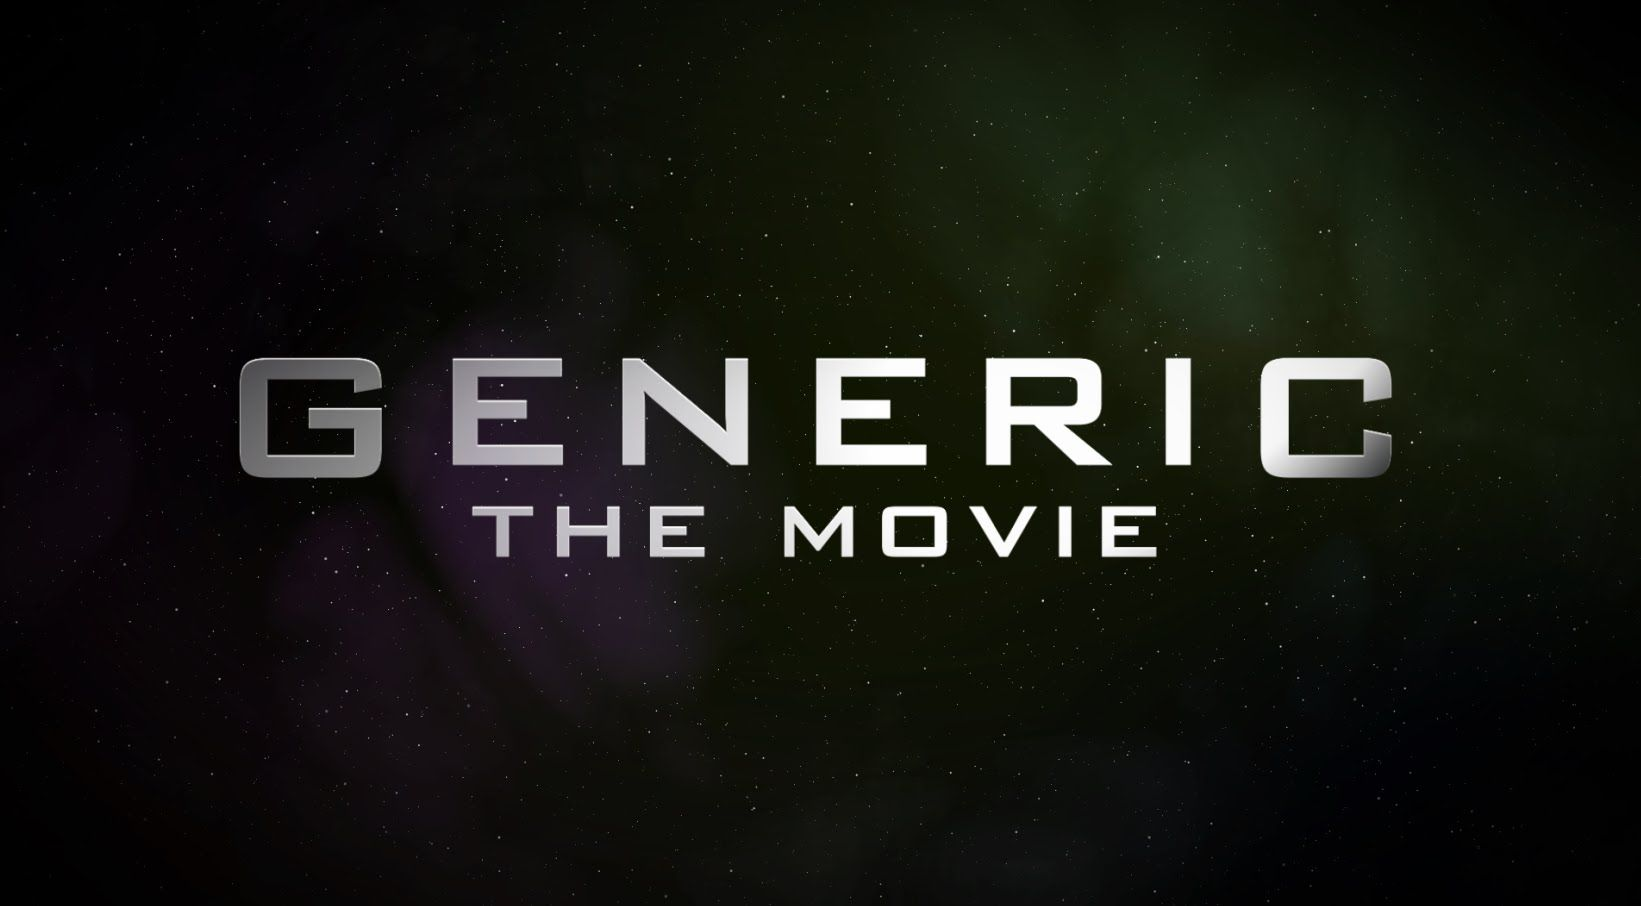 Generic Movie Title Trailer Text: After Effects Tutorial | titles ...